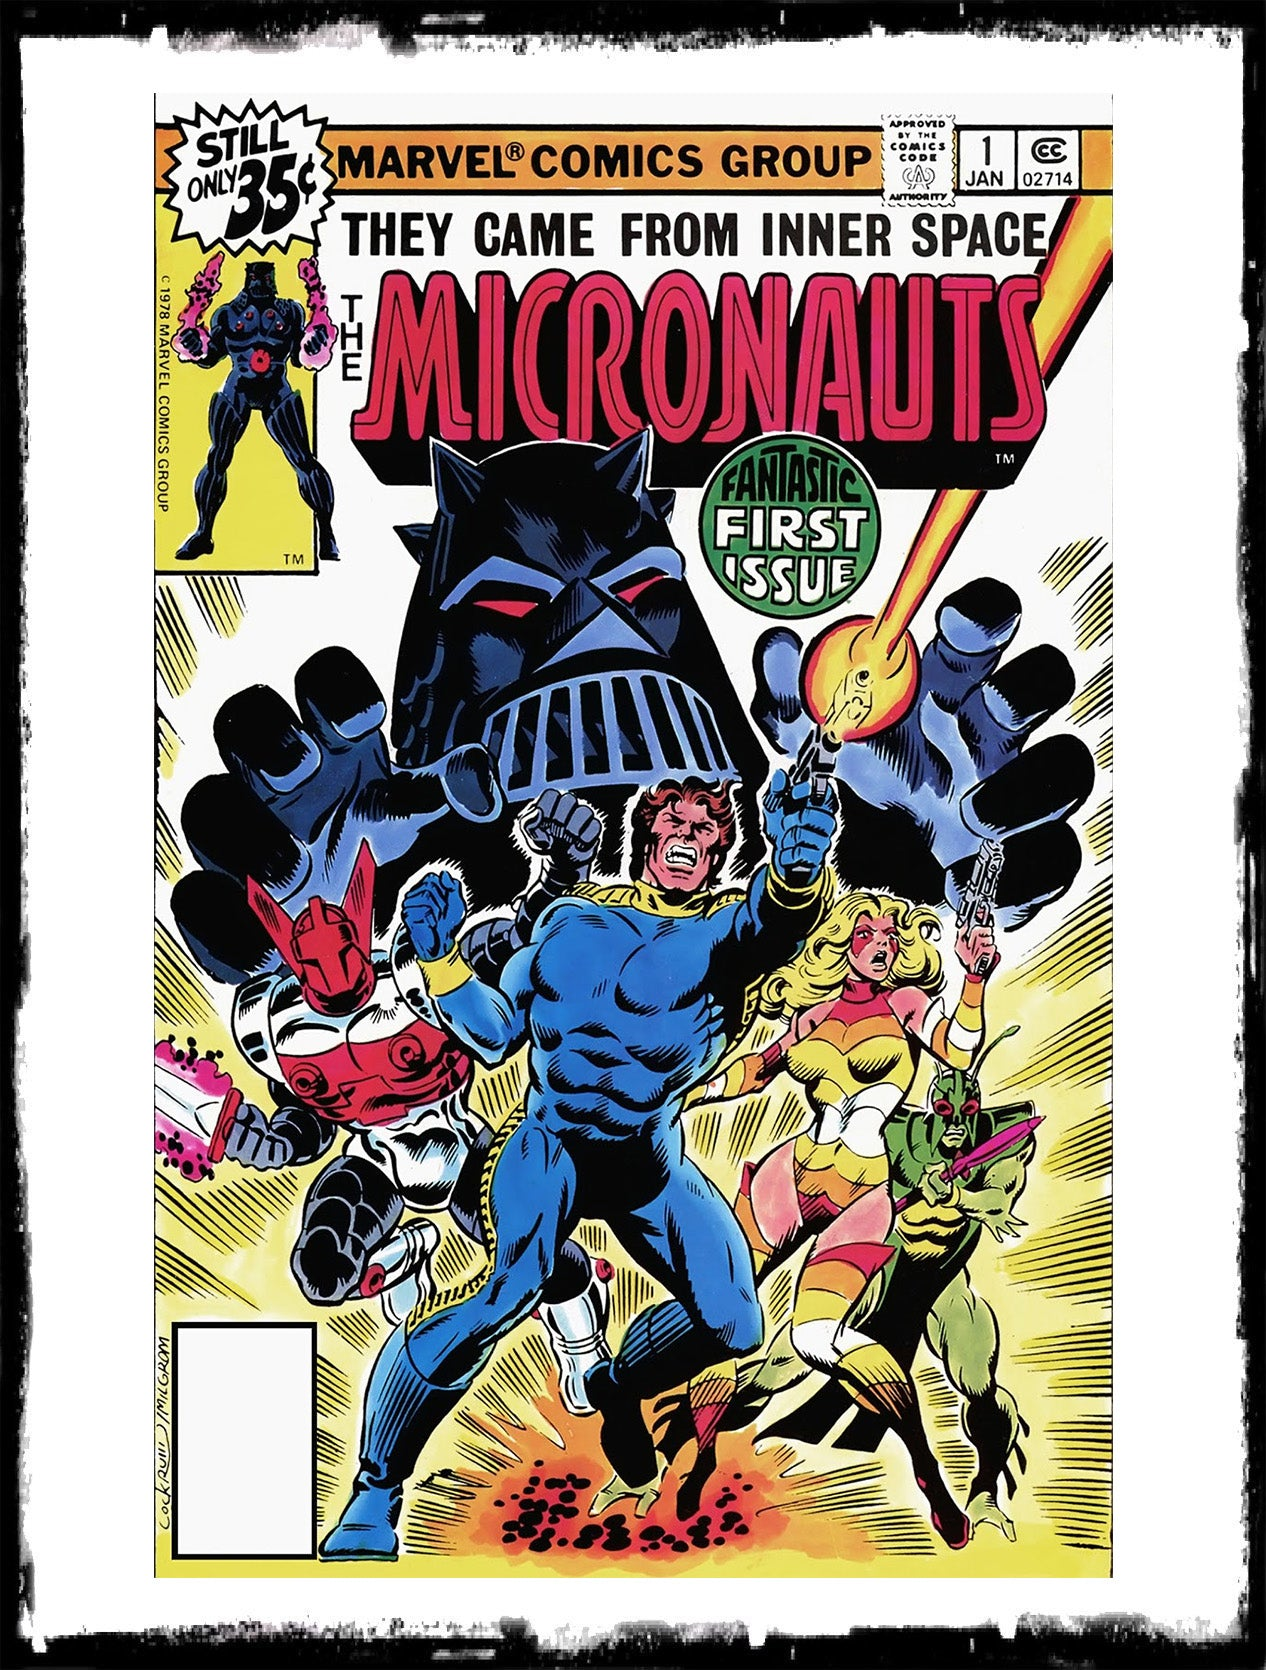 MICRONAUTS - #1 CLASSIC ISSUE! (1978 - VF+/NM)